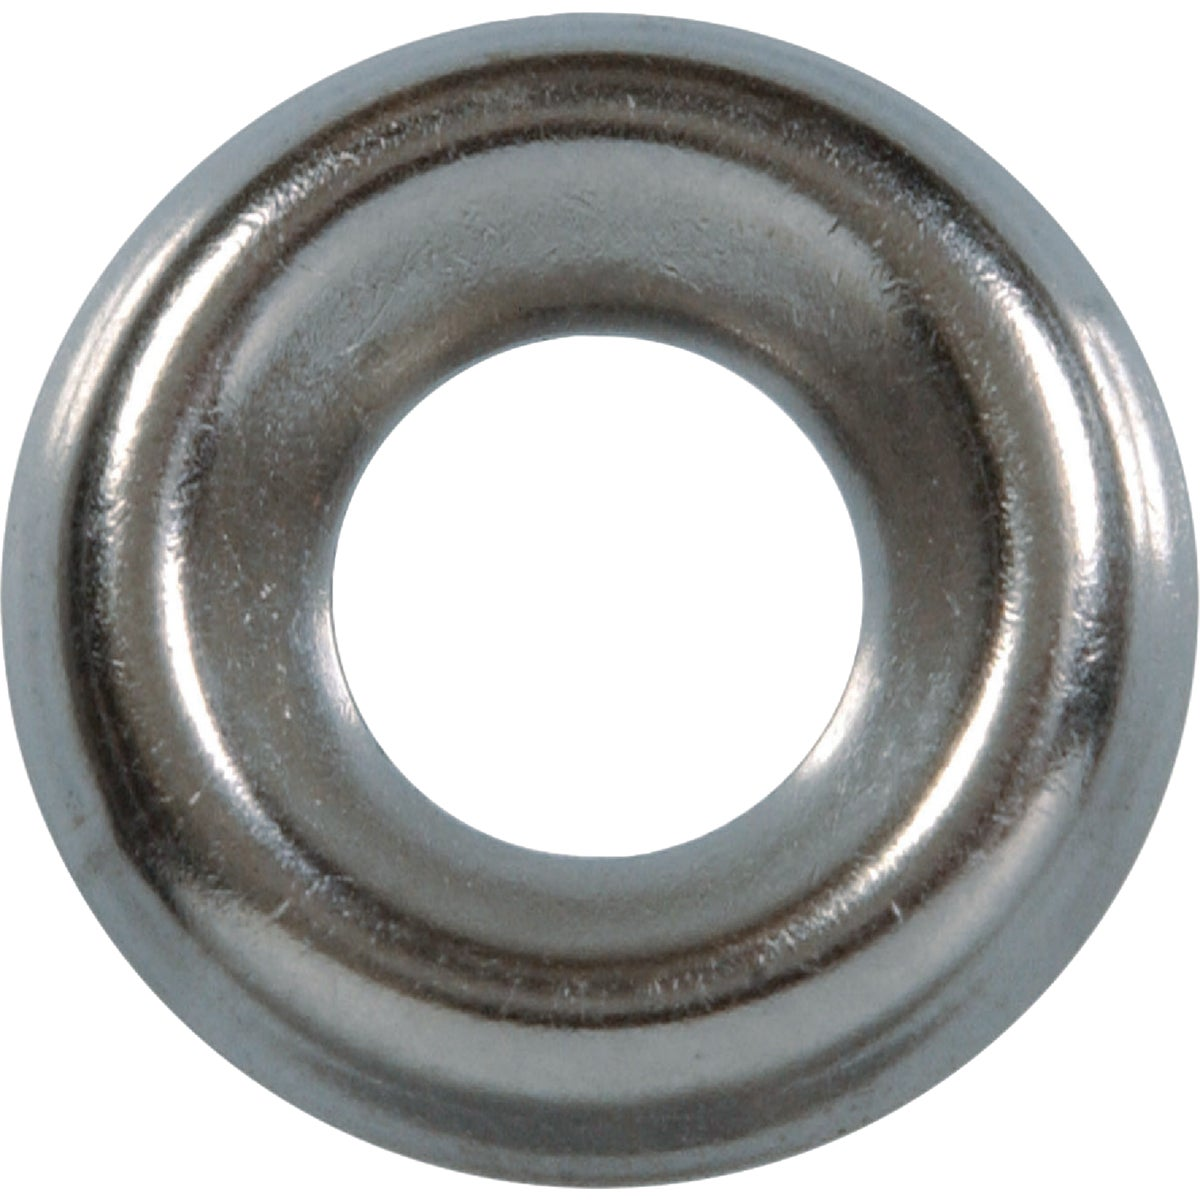 #10 NPS FINISH WASHER - 6676 by Hillman Fastener